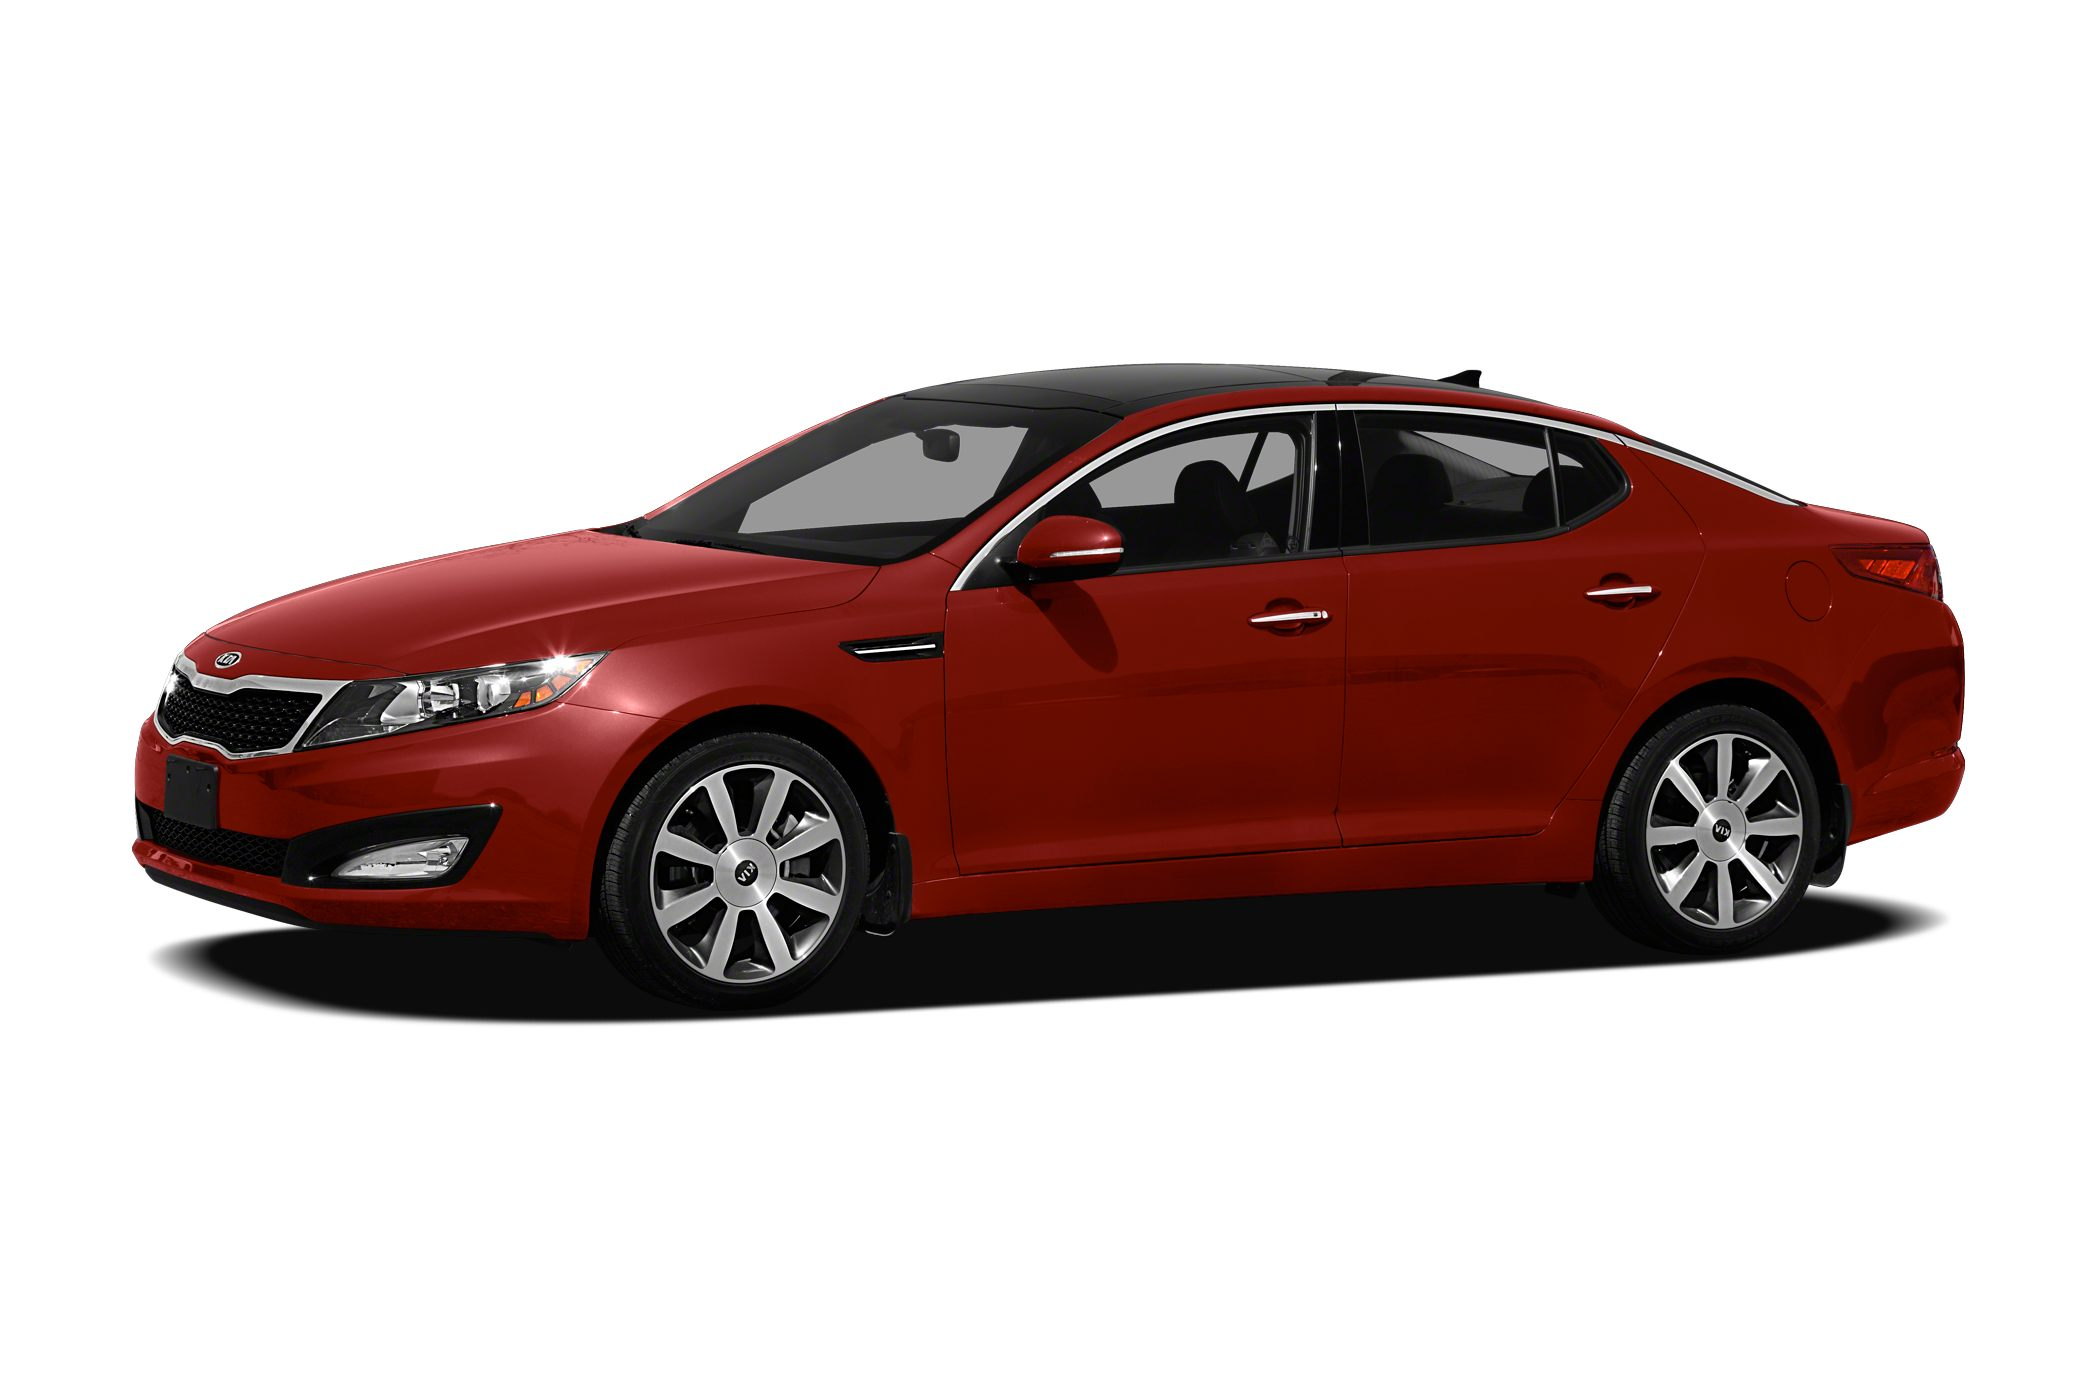 2012 Kia Optima EX Sedan for sale in Venice for $19,995 with 42,375 miles.